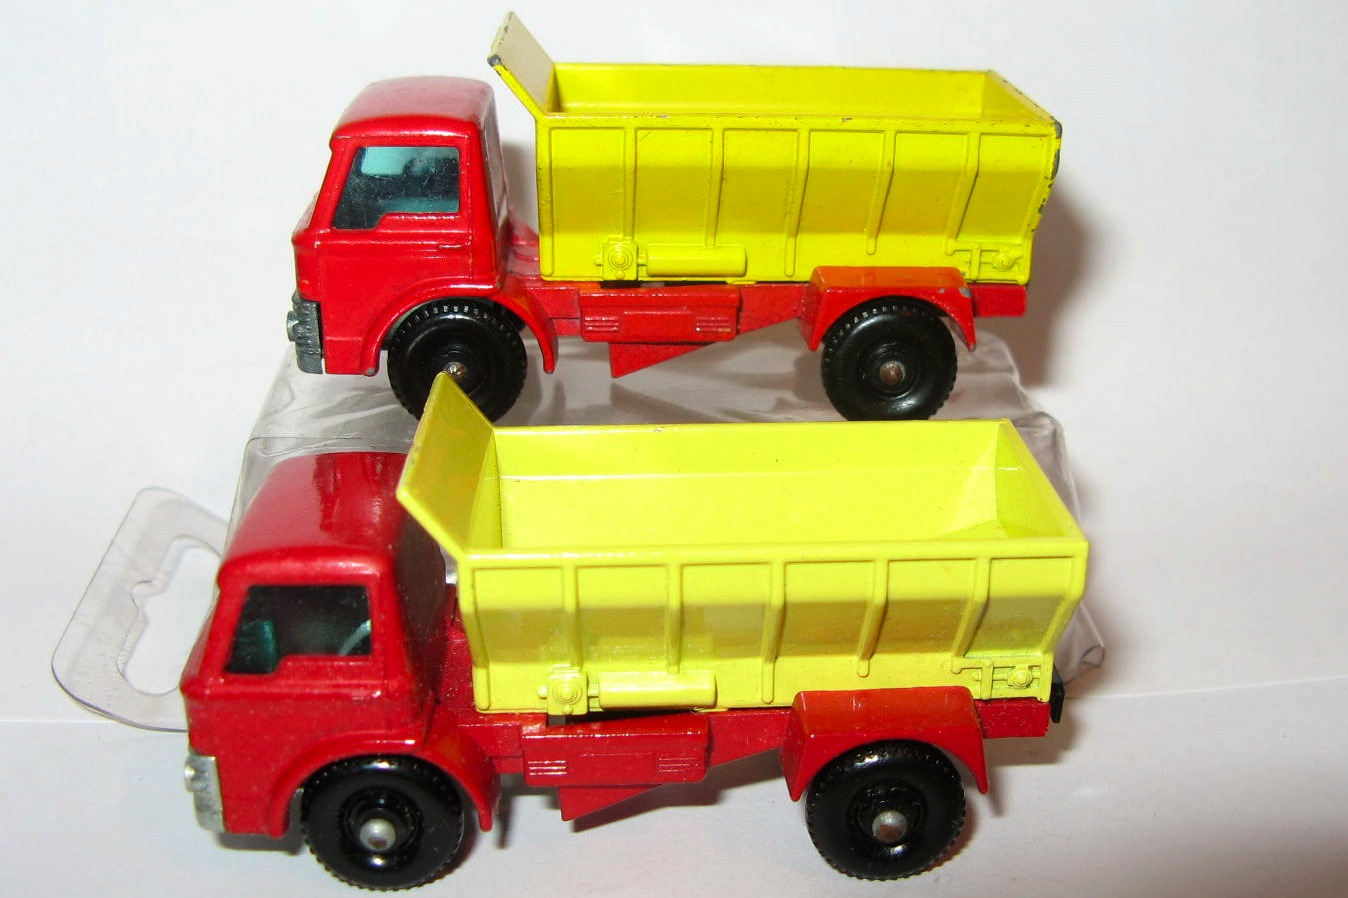 70 Bcompare Grit Spreading Truck.jpg